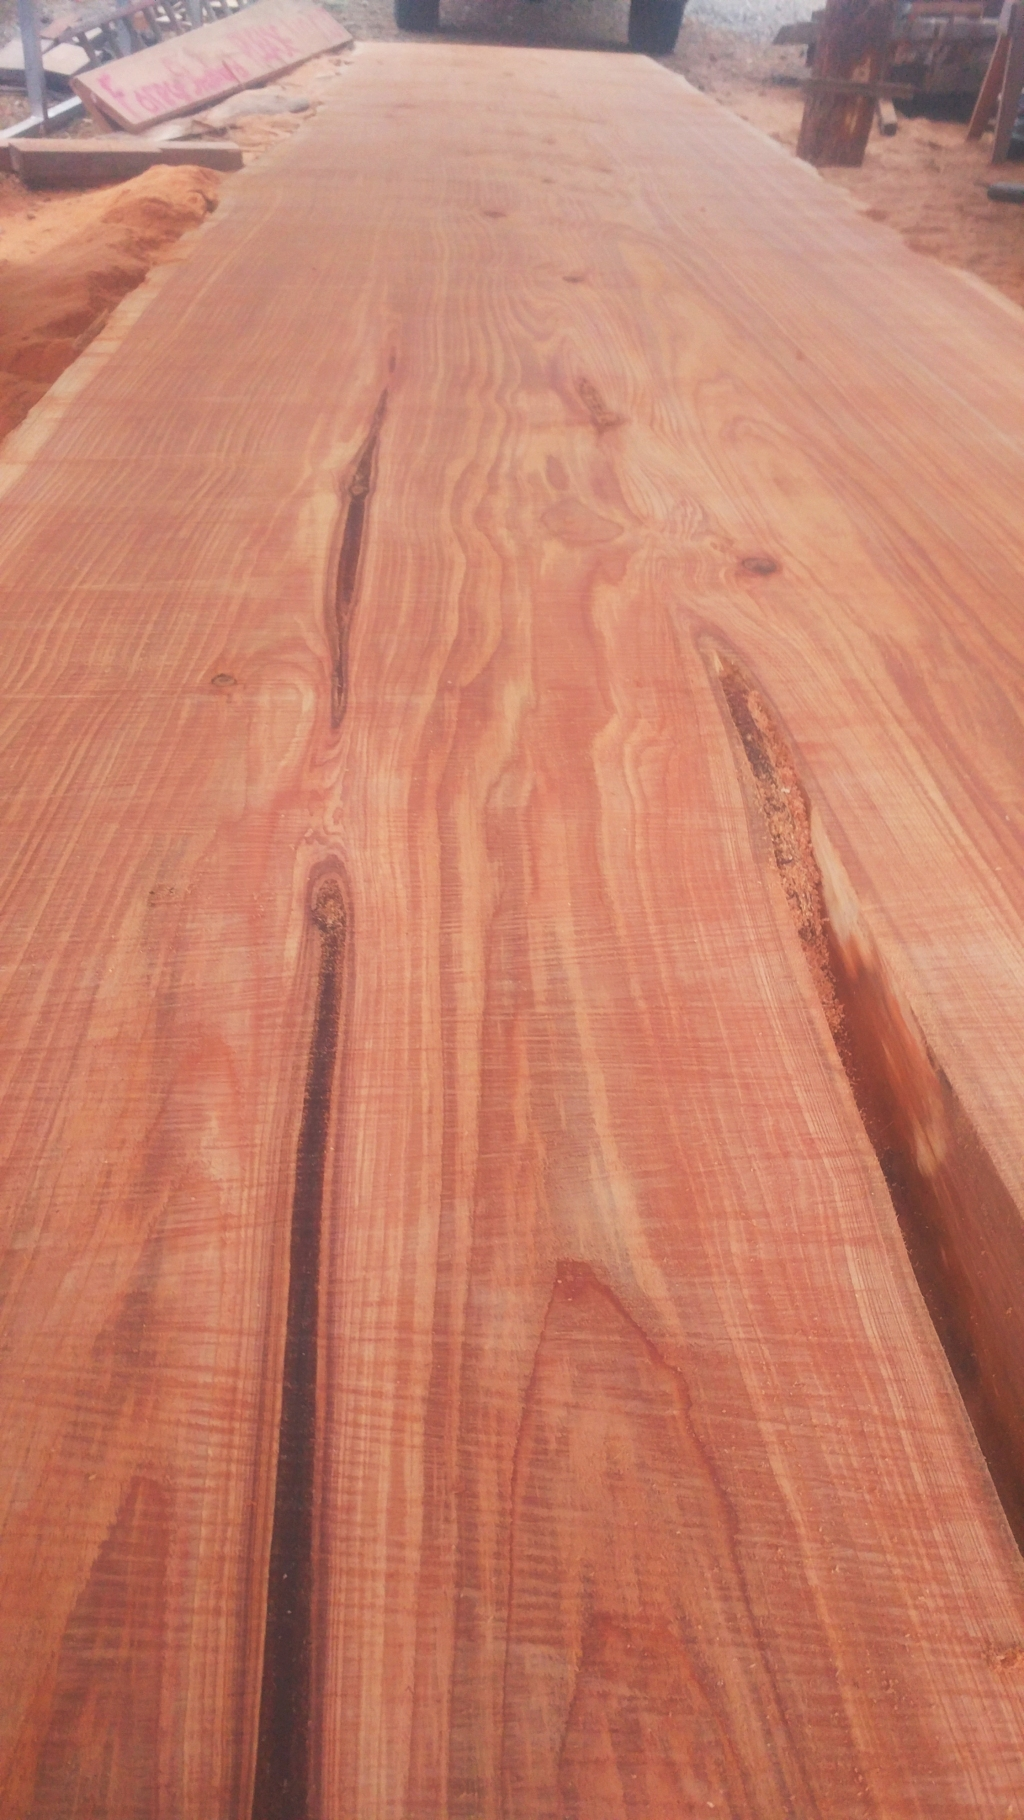 big-cedar-slab-close-up